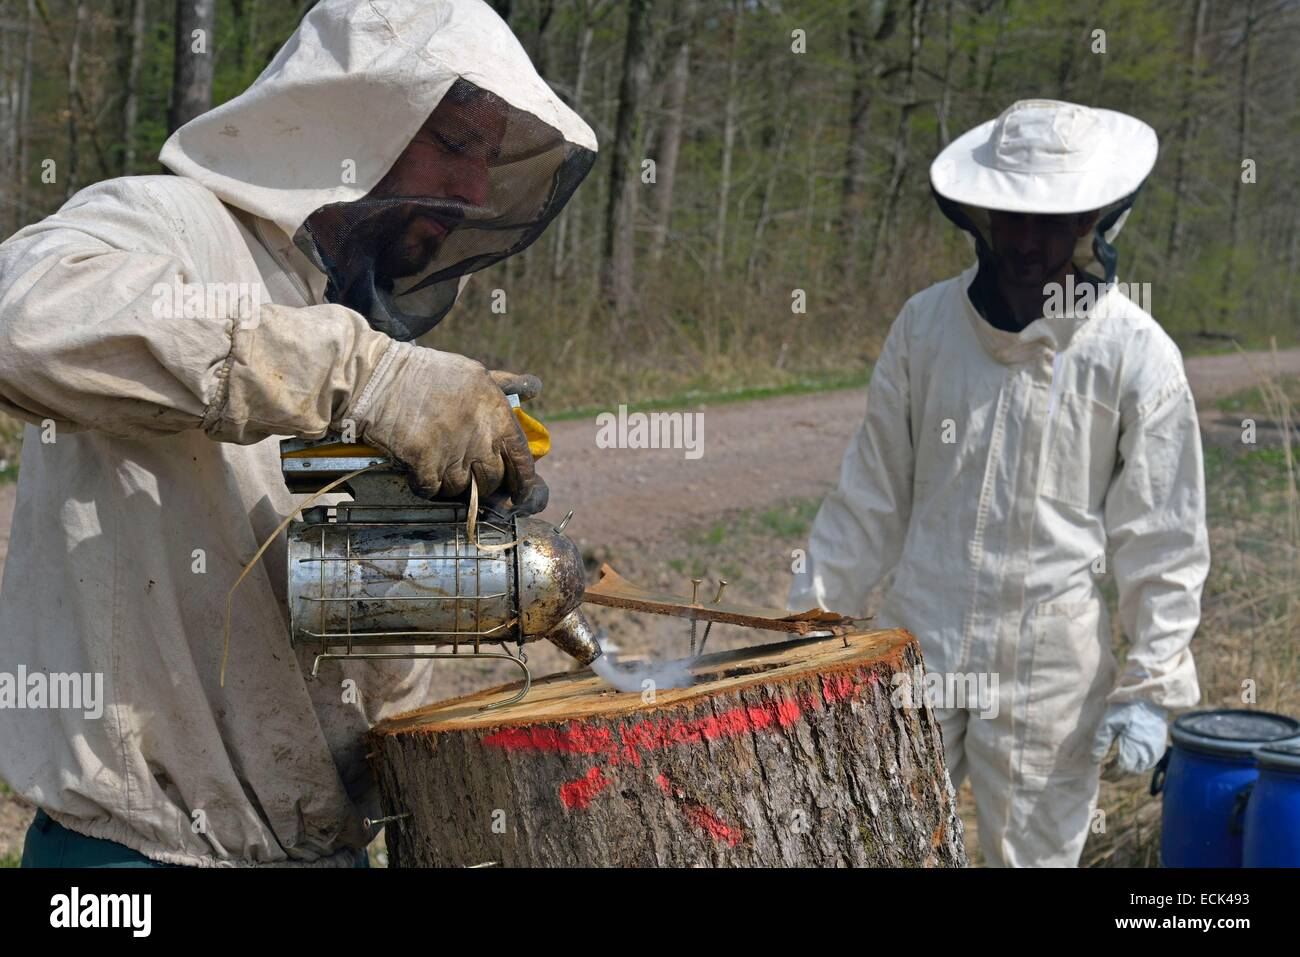 France, Haute Saone, beekeepers acting with a smokehouse on essain forest bees (Apis mellifera) housed in the trunk - Stock Image